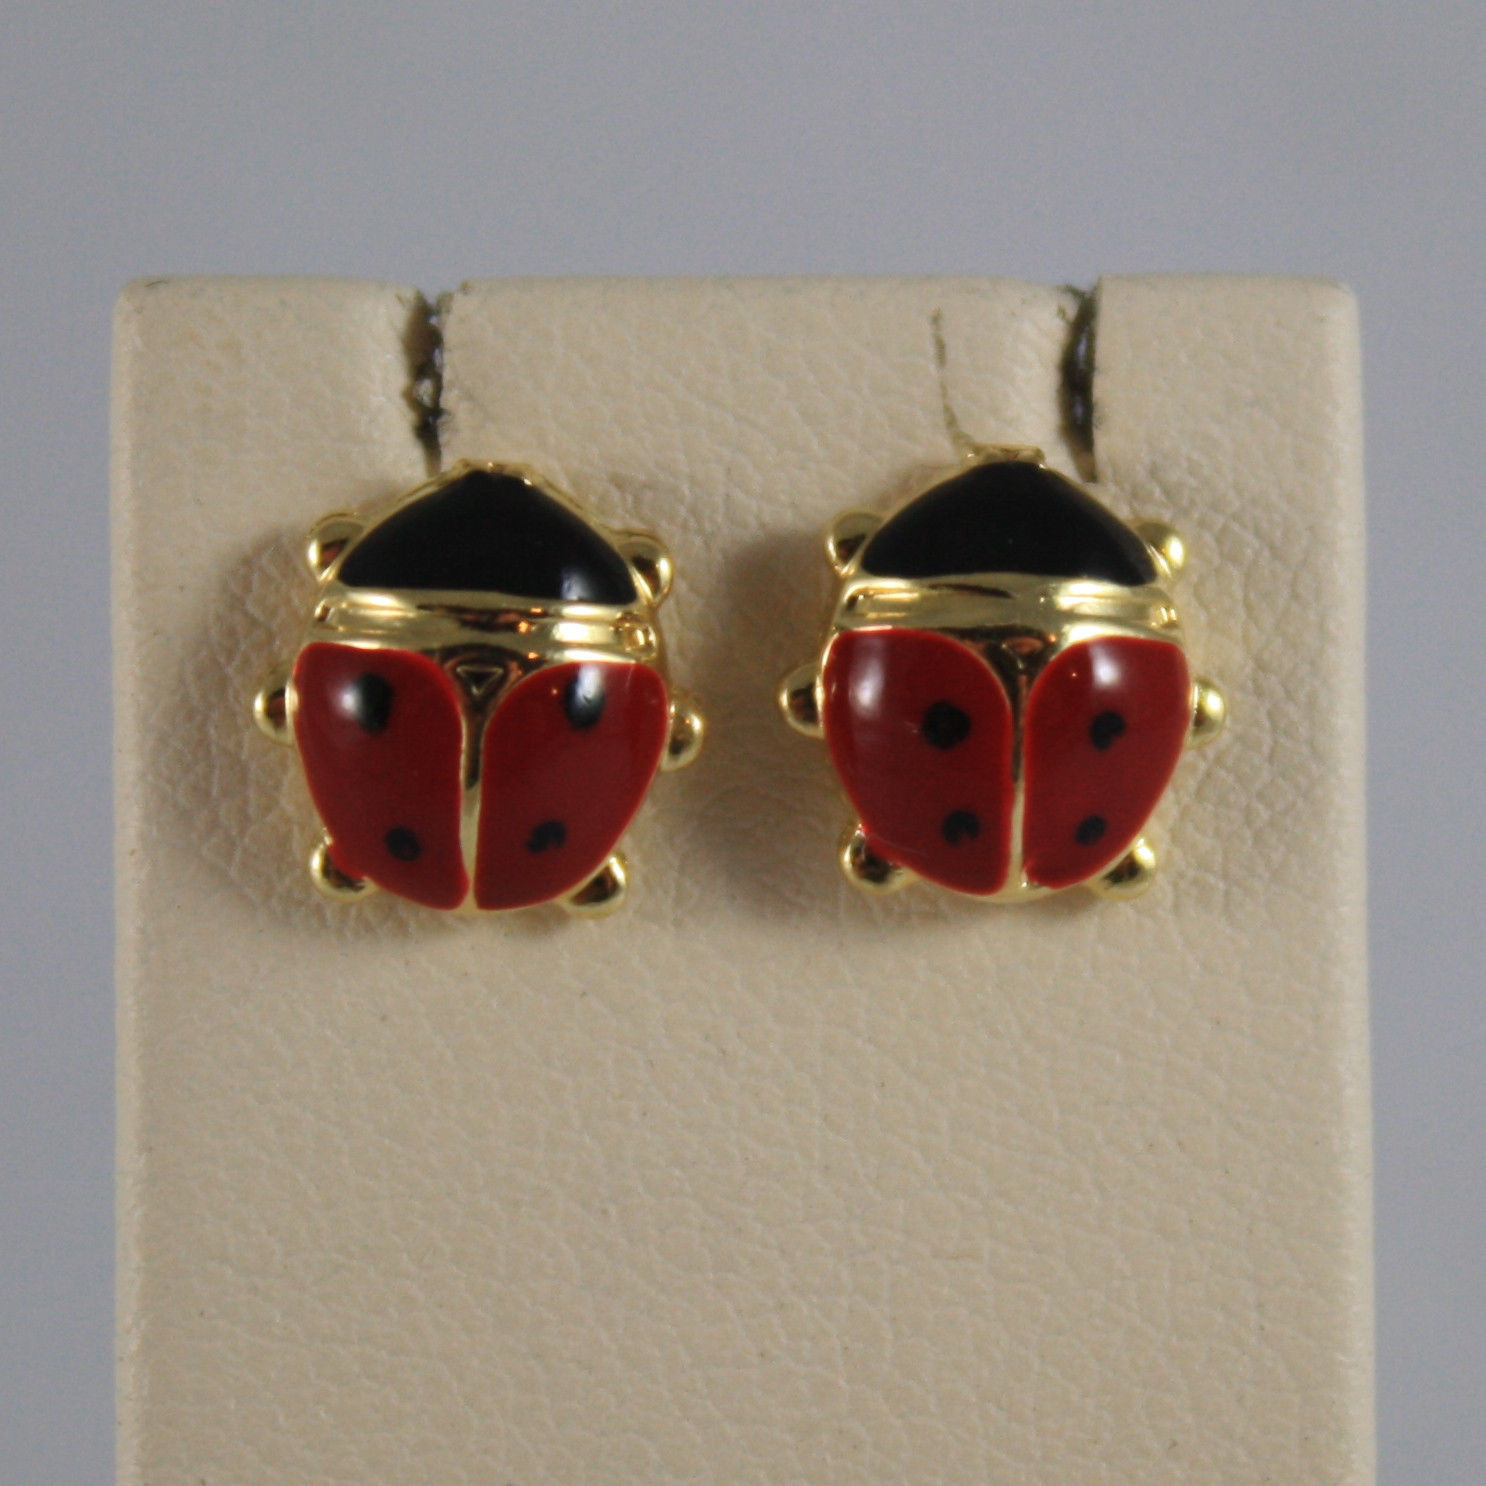 SOLID 18K YELLOW GOLD EARRINGS, WITH GLAZED LADYBIRD, WIDTH 0,35 IN